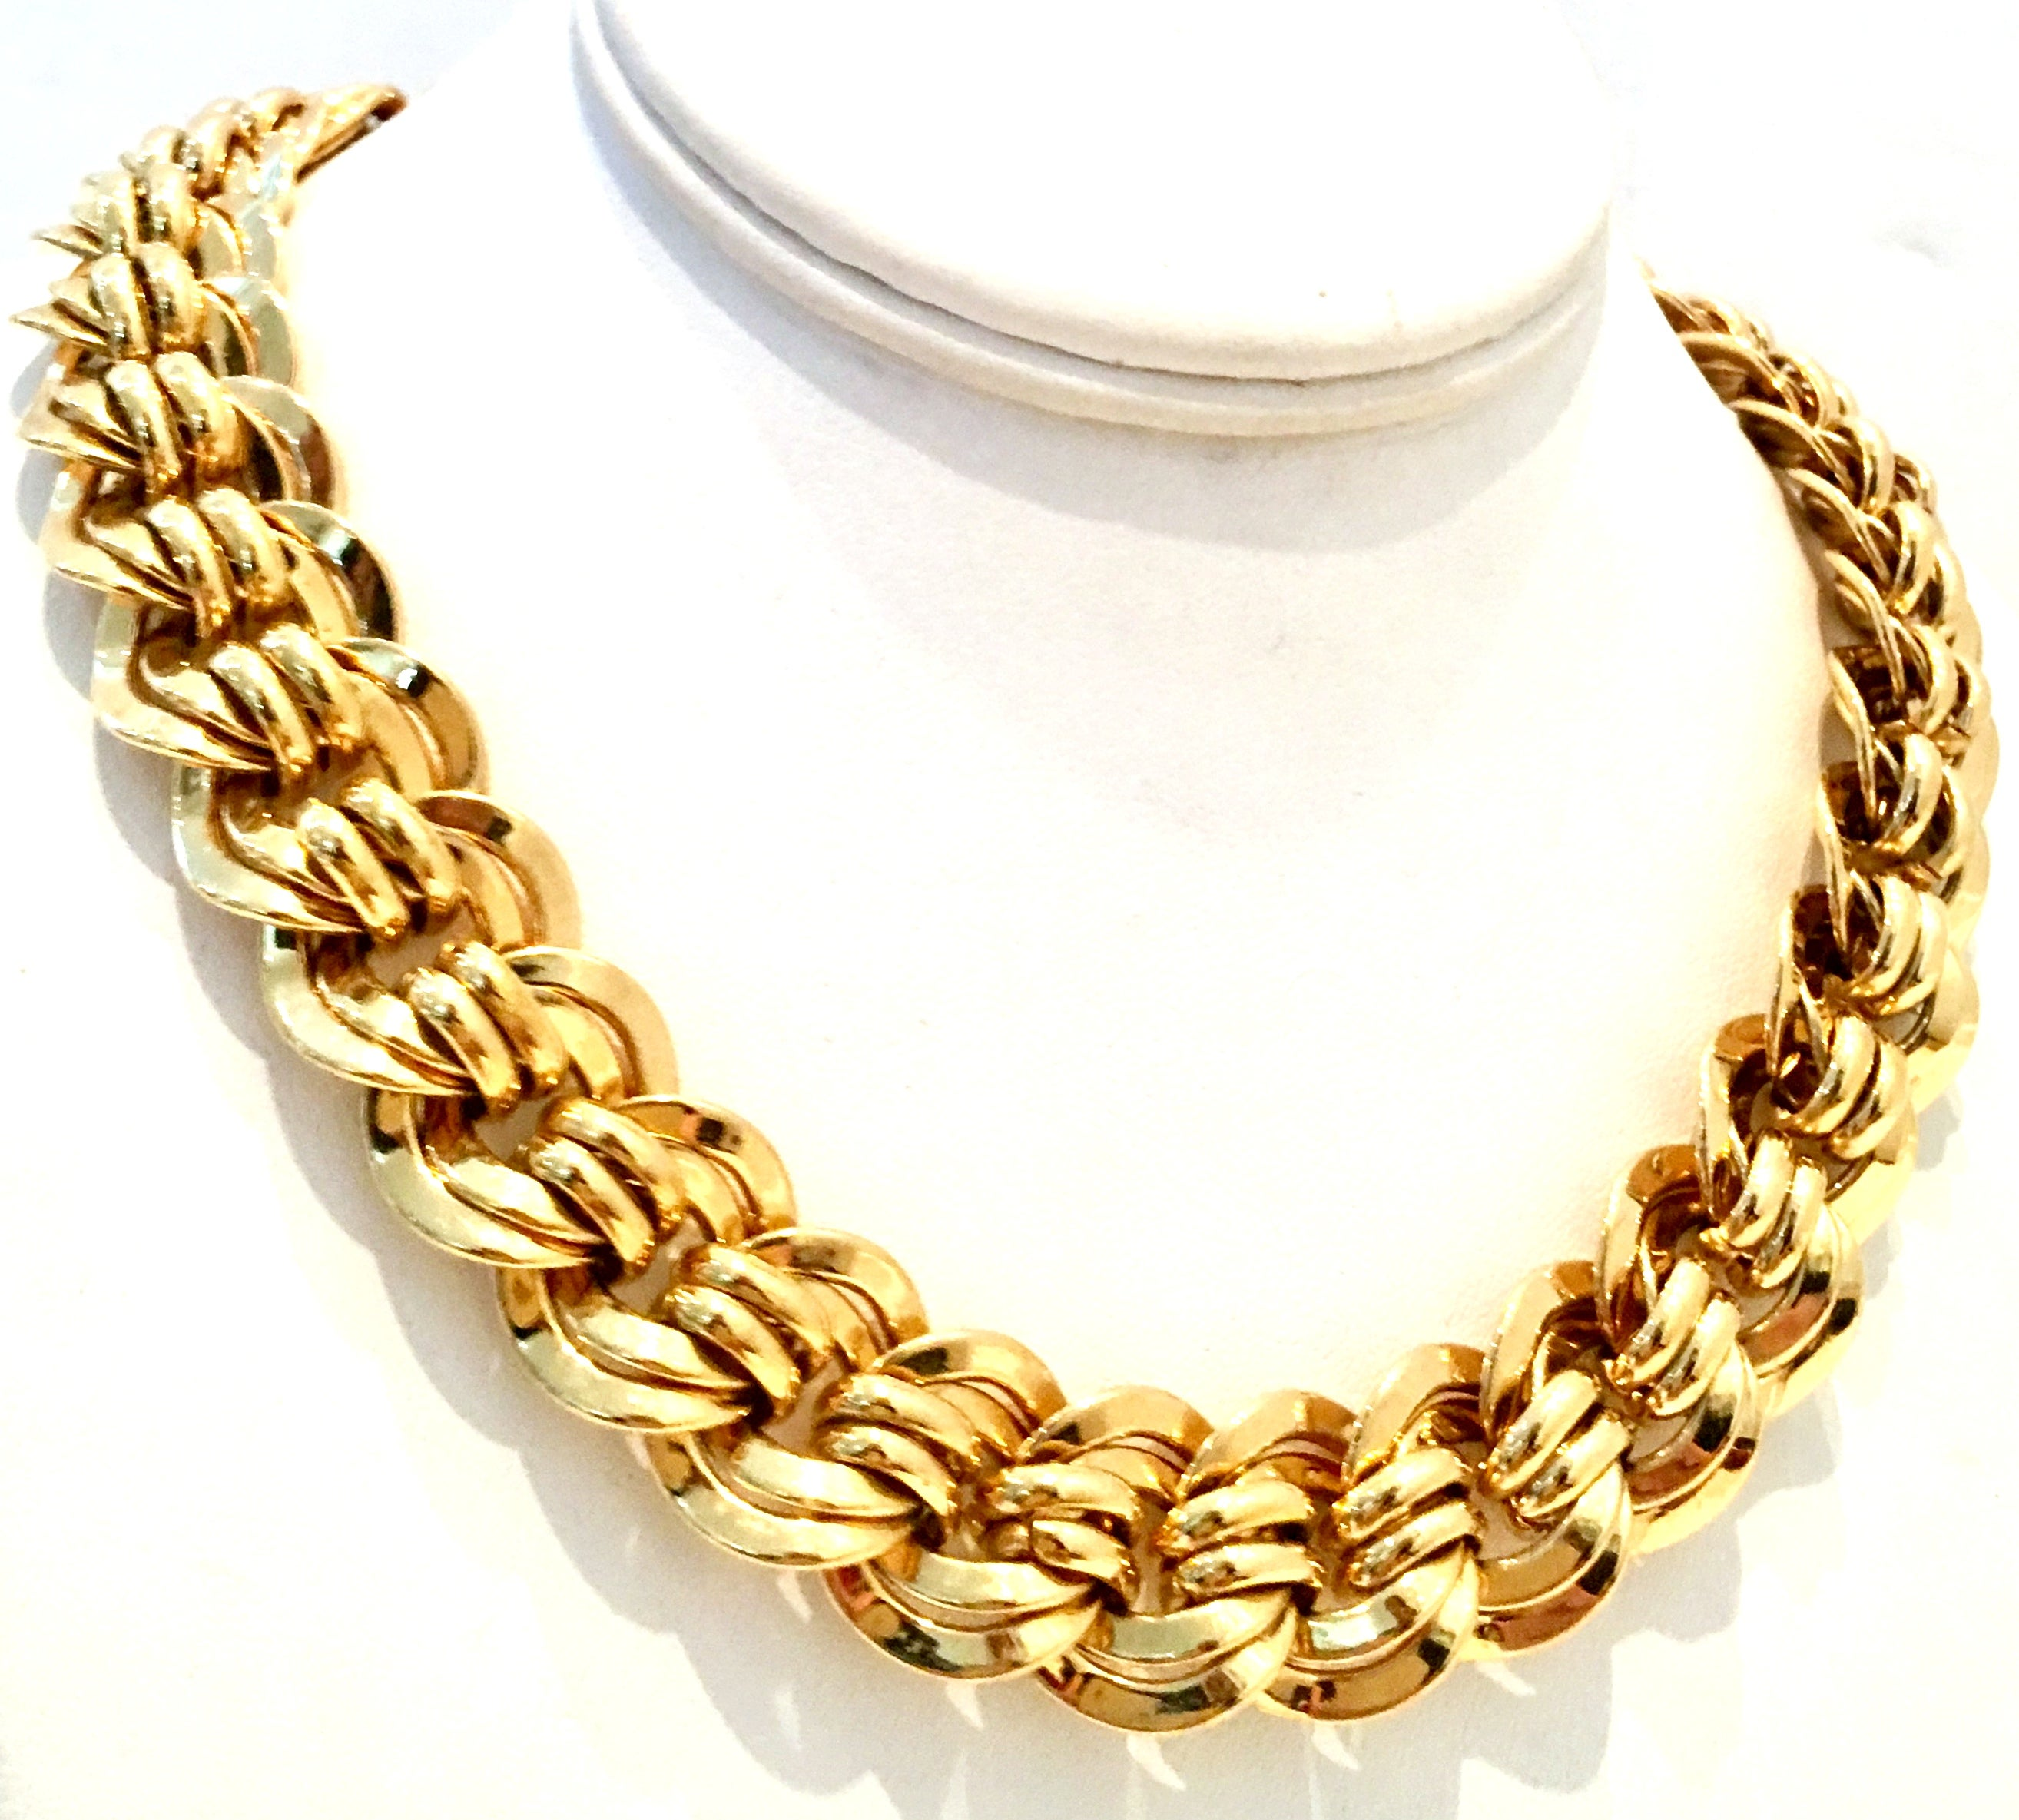 Italian Gold Chain >> 20th Century Italian Gold Plate Chain Link Choker Style Necklace By Napier